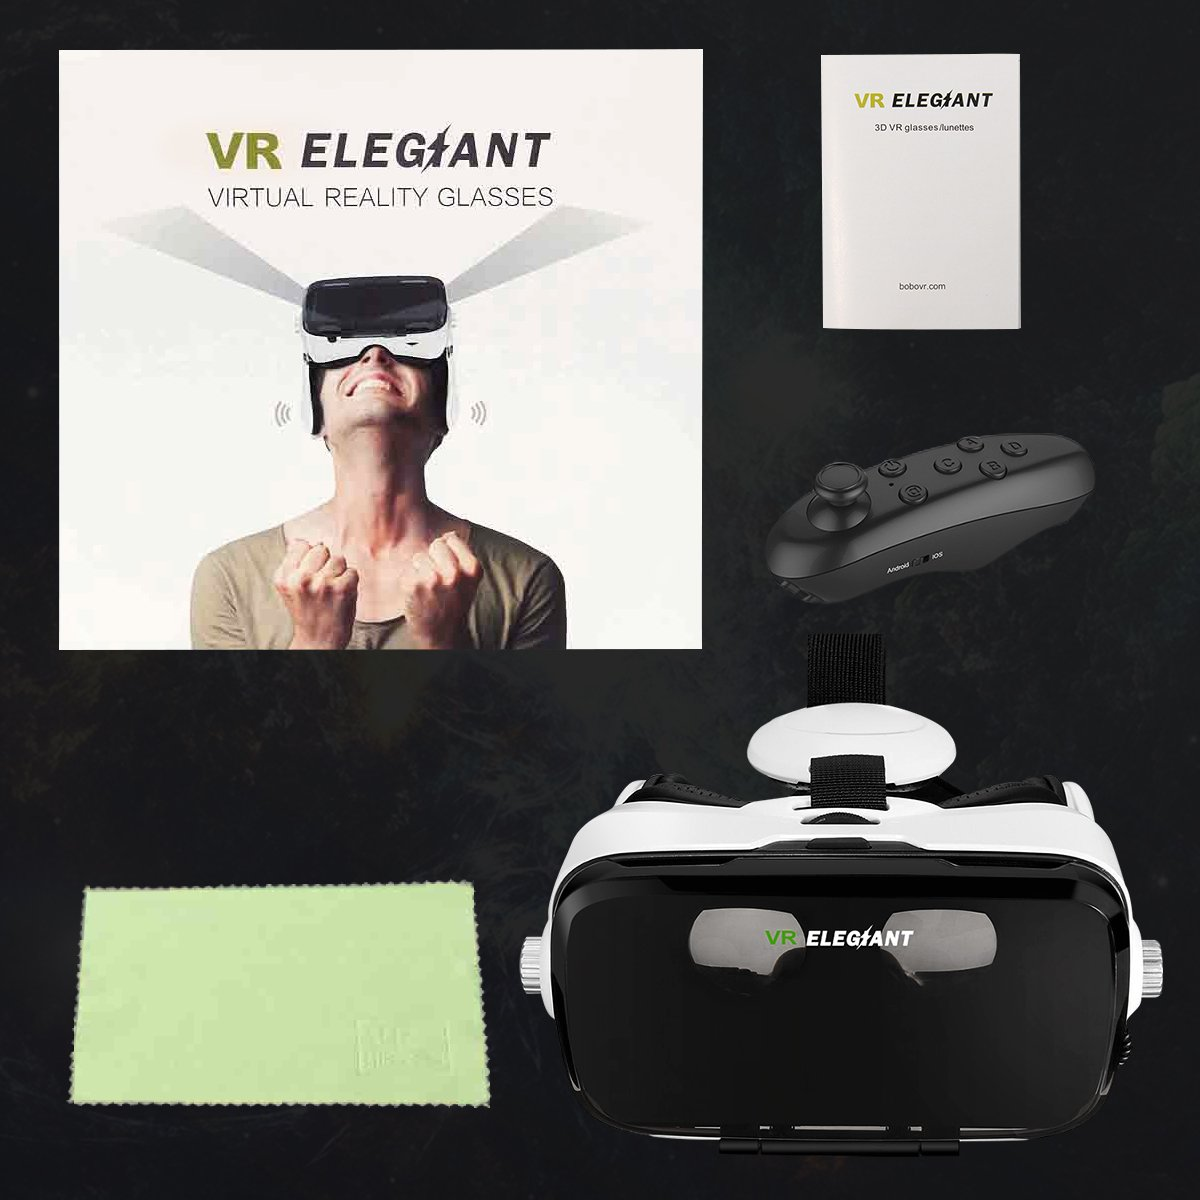 ELEGIANT VR Headset, 3D VR Glasses, Virtual Reality Headset Built-in Headphone by ELEGIANT (Image #8)